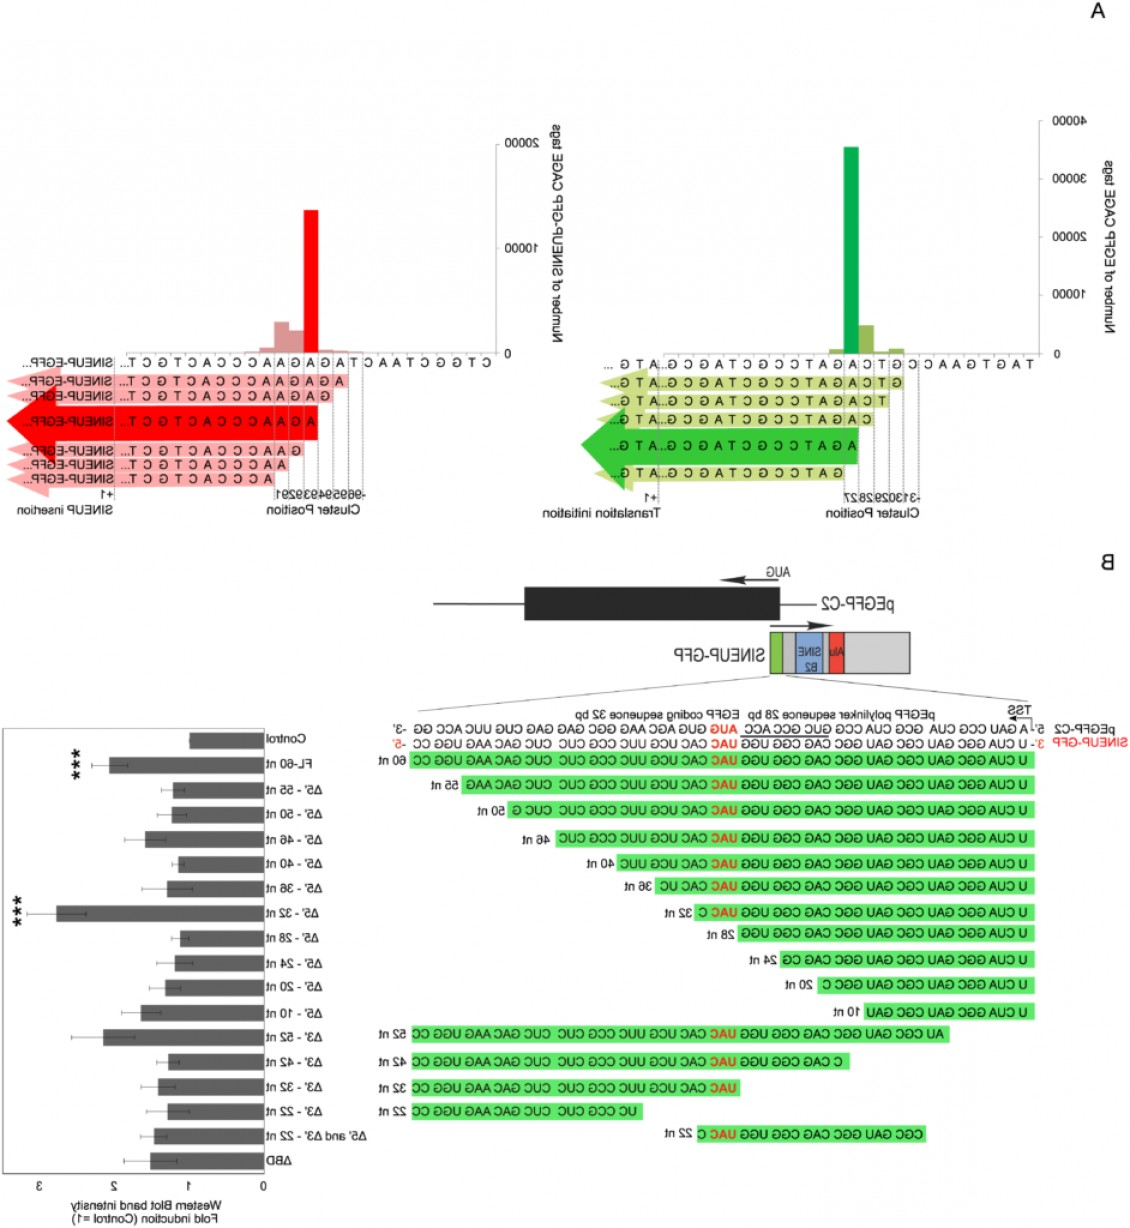 PEGFP Vector Map: Identification Of Functional Features Of Synthetic Sineups Antisense Lncrnas That Specifically Enhance Protein Translation